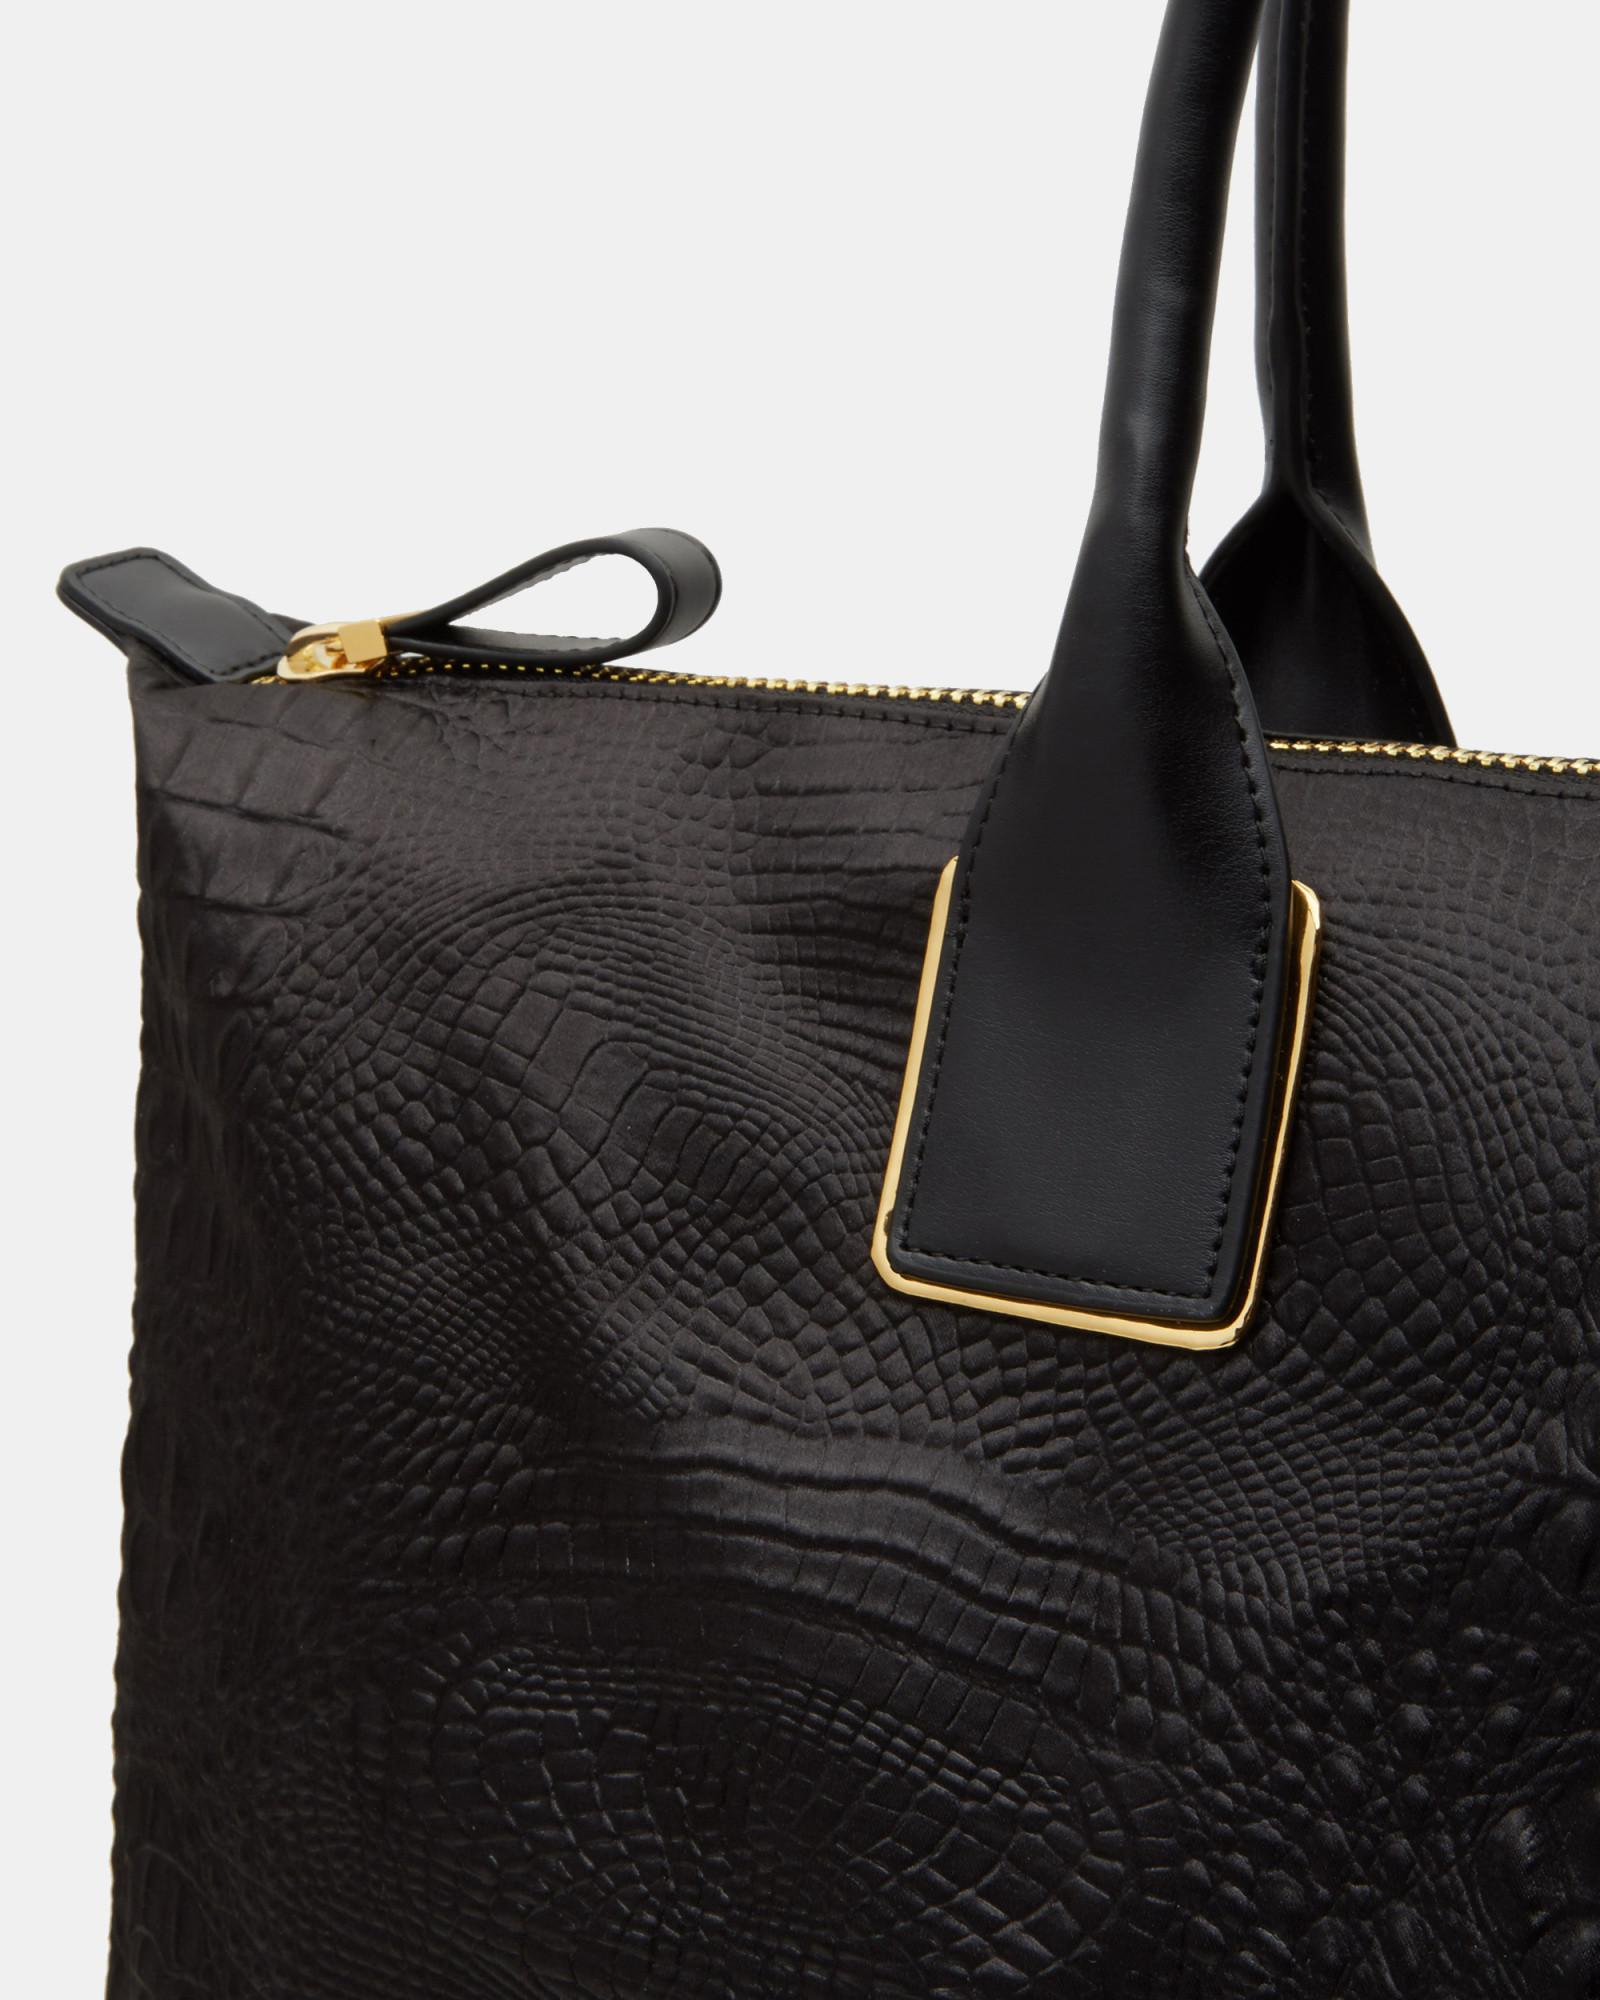 33575464b2e Lyst - Ted Baker Exotic Large Tote Bag in Black